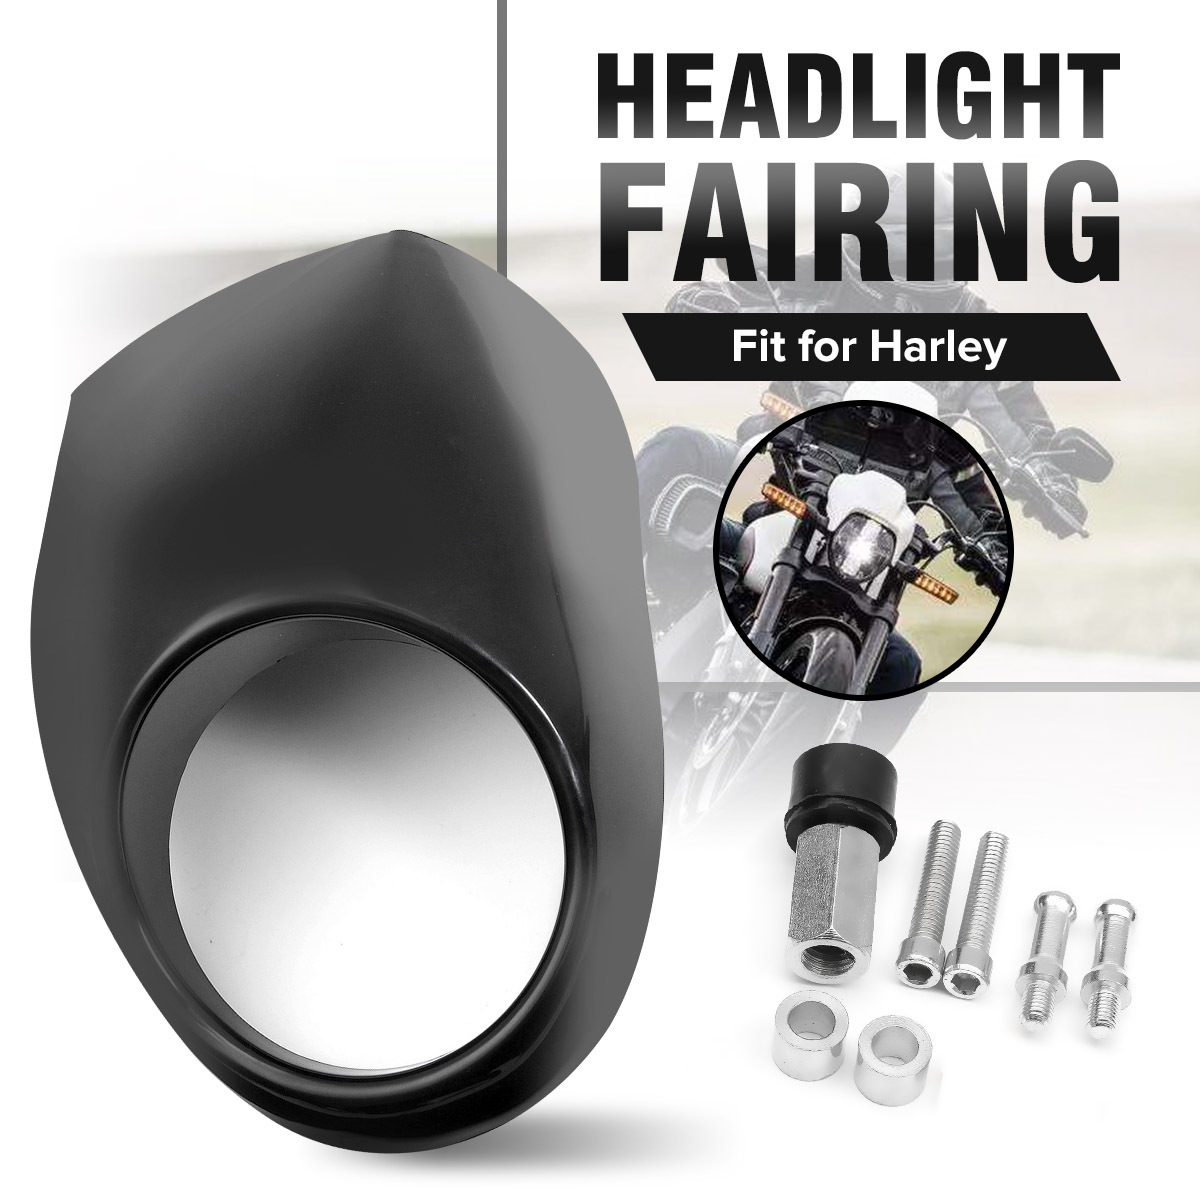 Matte Black For Harley Sportster Dyna FX XL 883 1200 Headlight Fairing Mask Front Cowl Fork Mount Motorcycles Parts